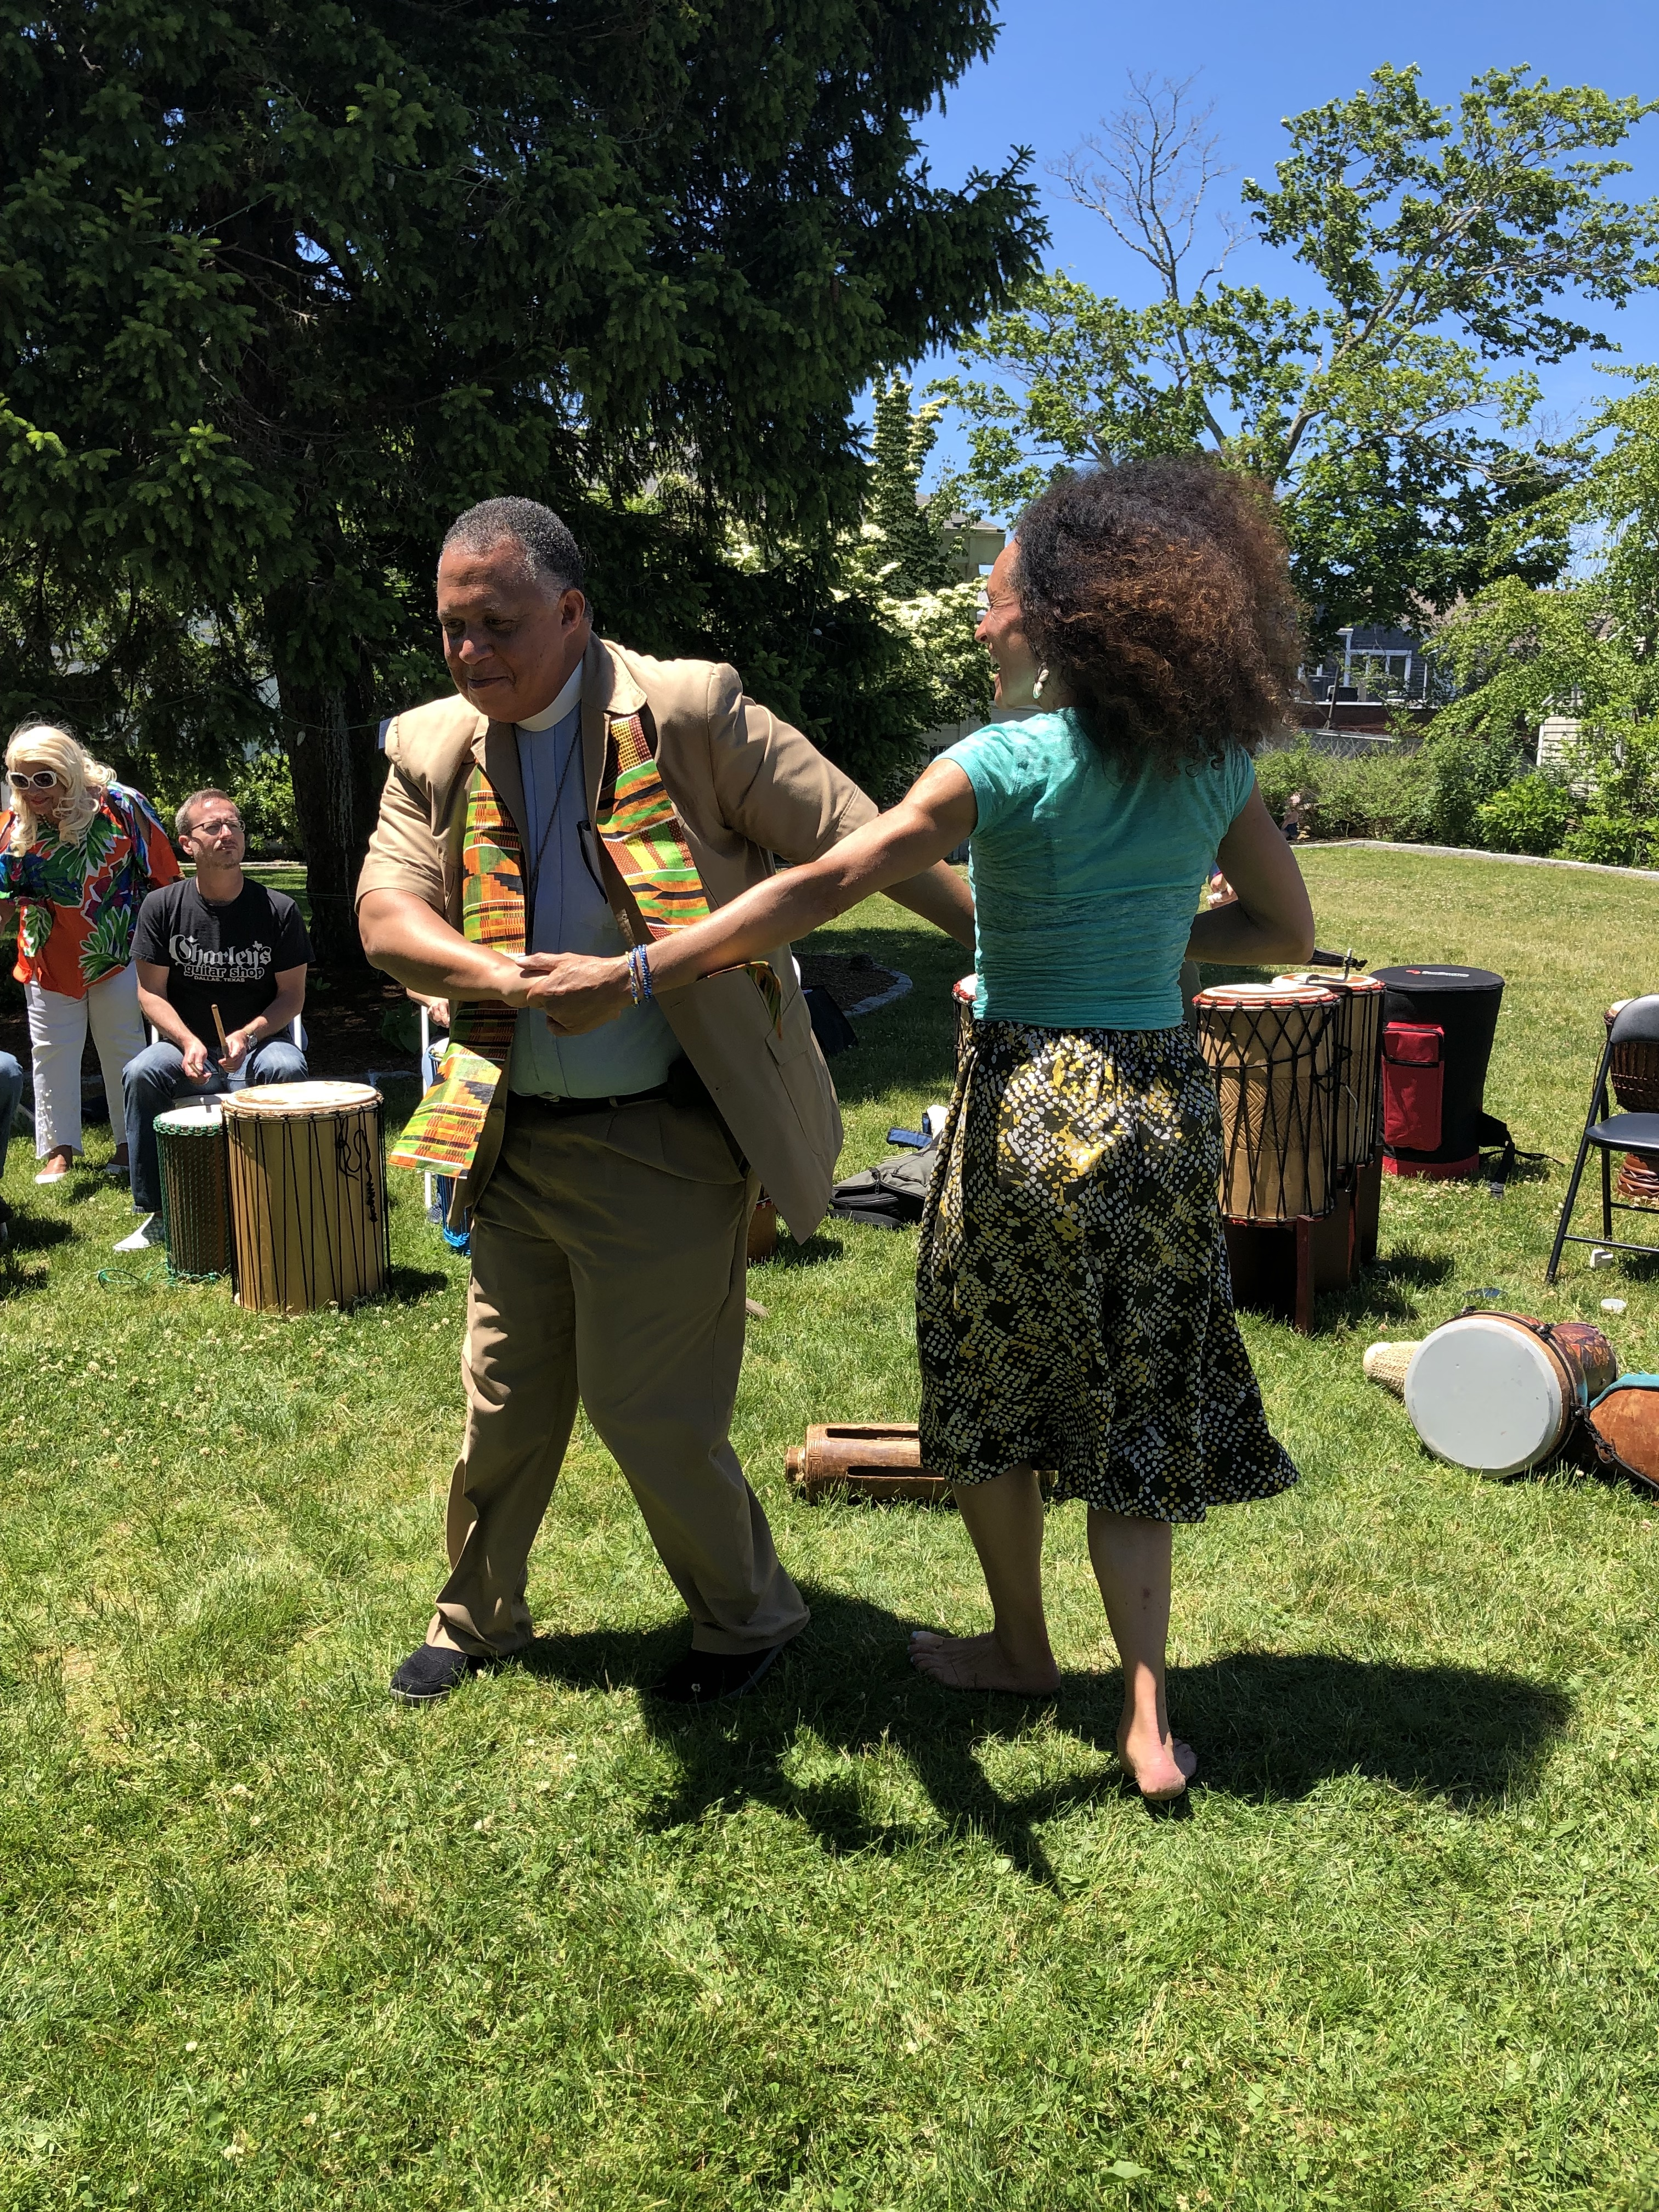 Rev. Will Mebane of St. Barnabas with Tara Murphy of Cape Cod African Dance and Drum during the 2019 Juneteenth Celebration.